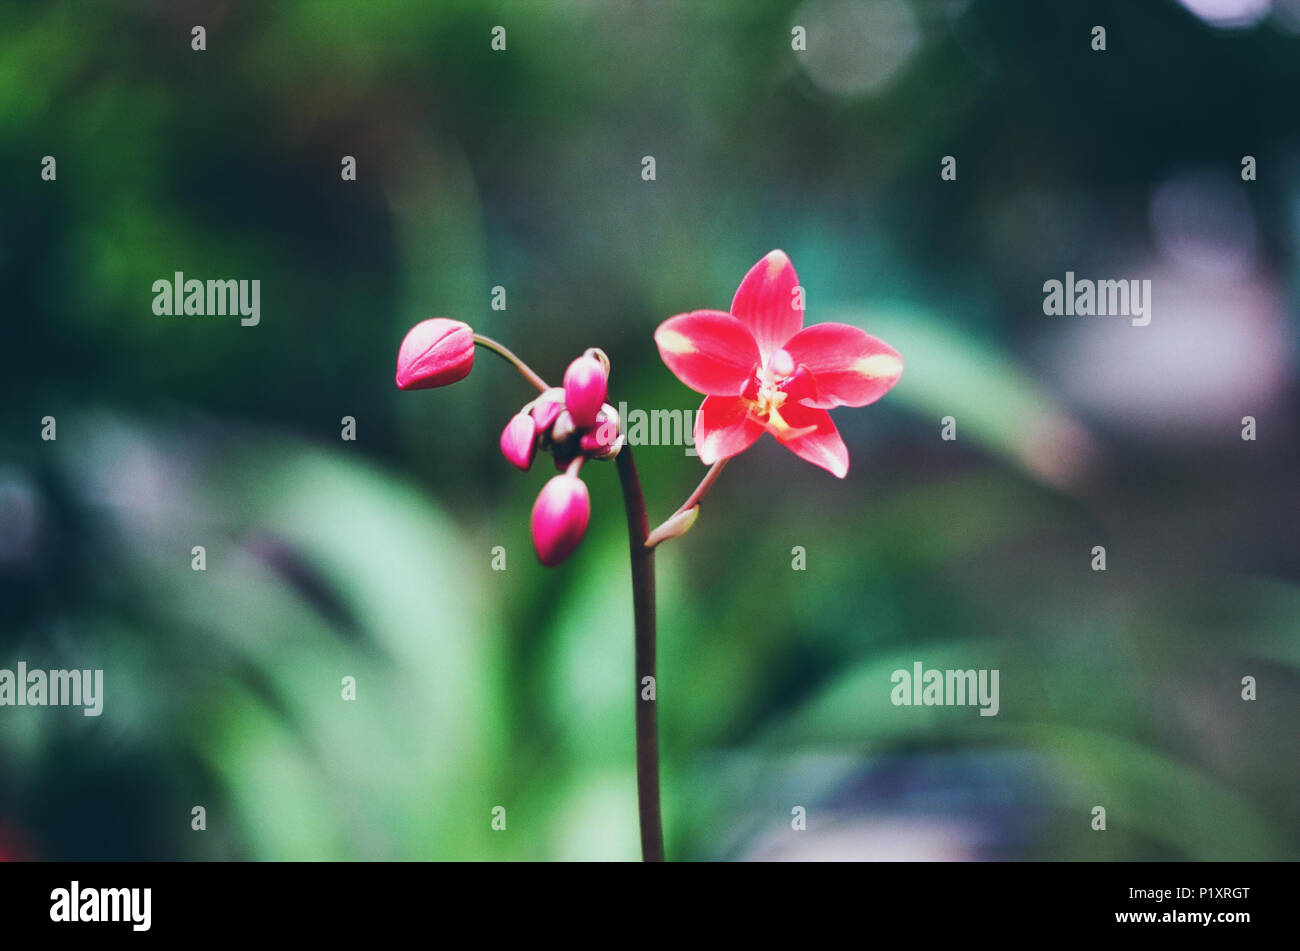 Beautiful natural flowers background stock photo 207728328 alamy beautiful natural flowers background izmirmasajfo